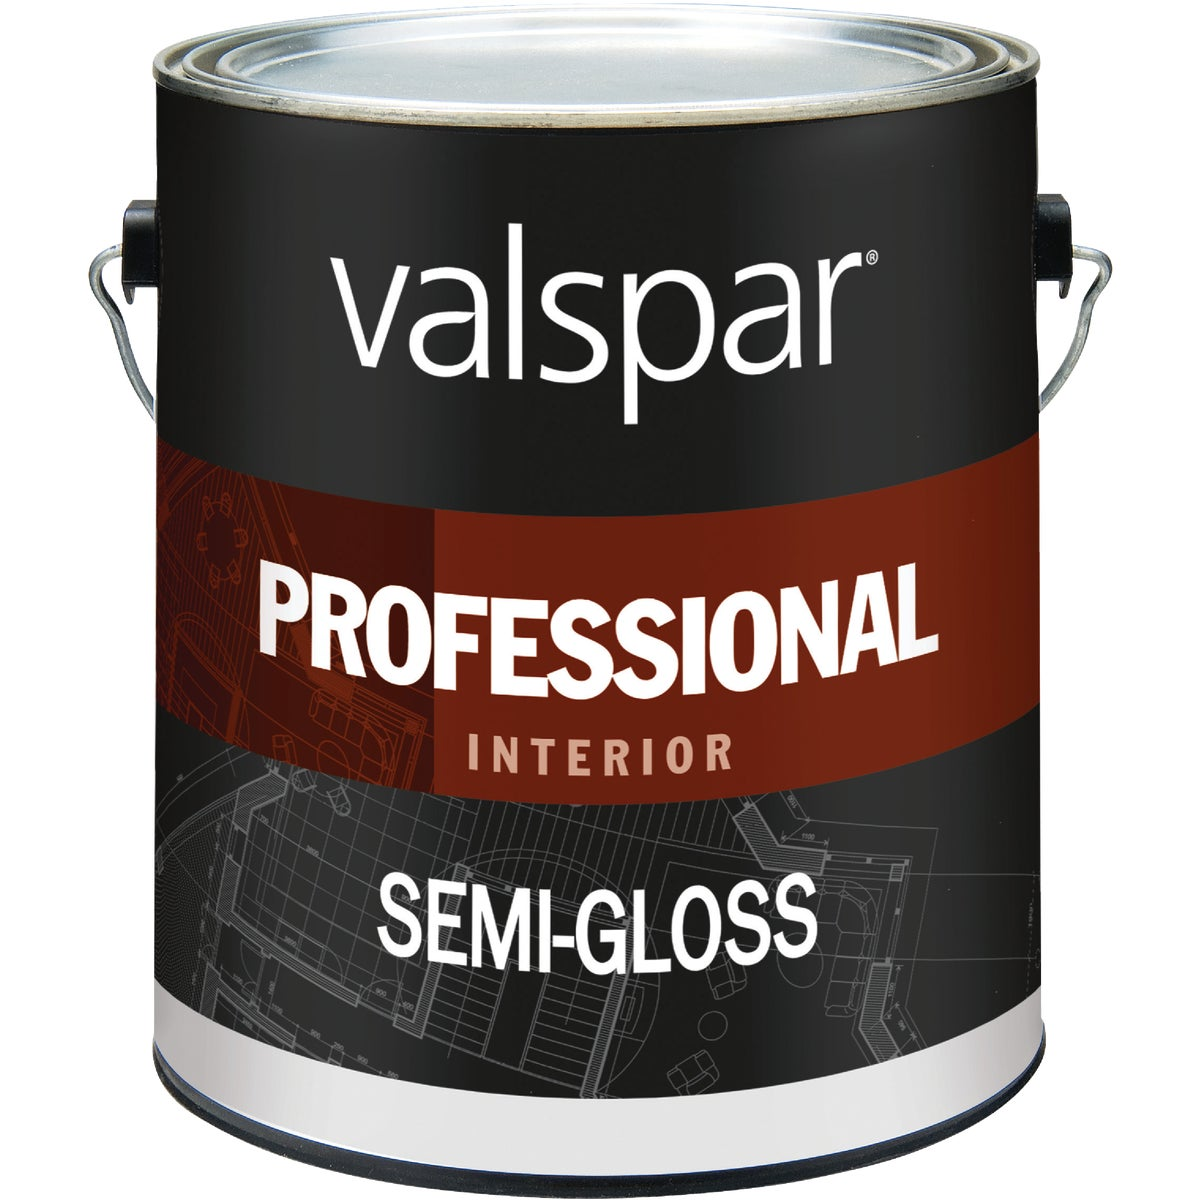 INT S/G LIGHT BASE PAINT - 045.0011911.007 by Valspar Corp